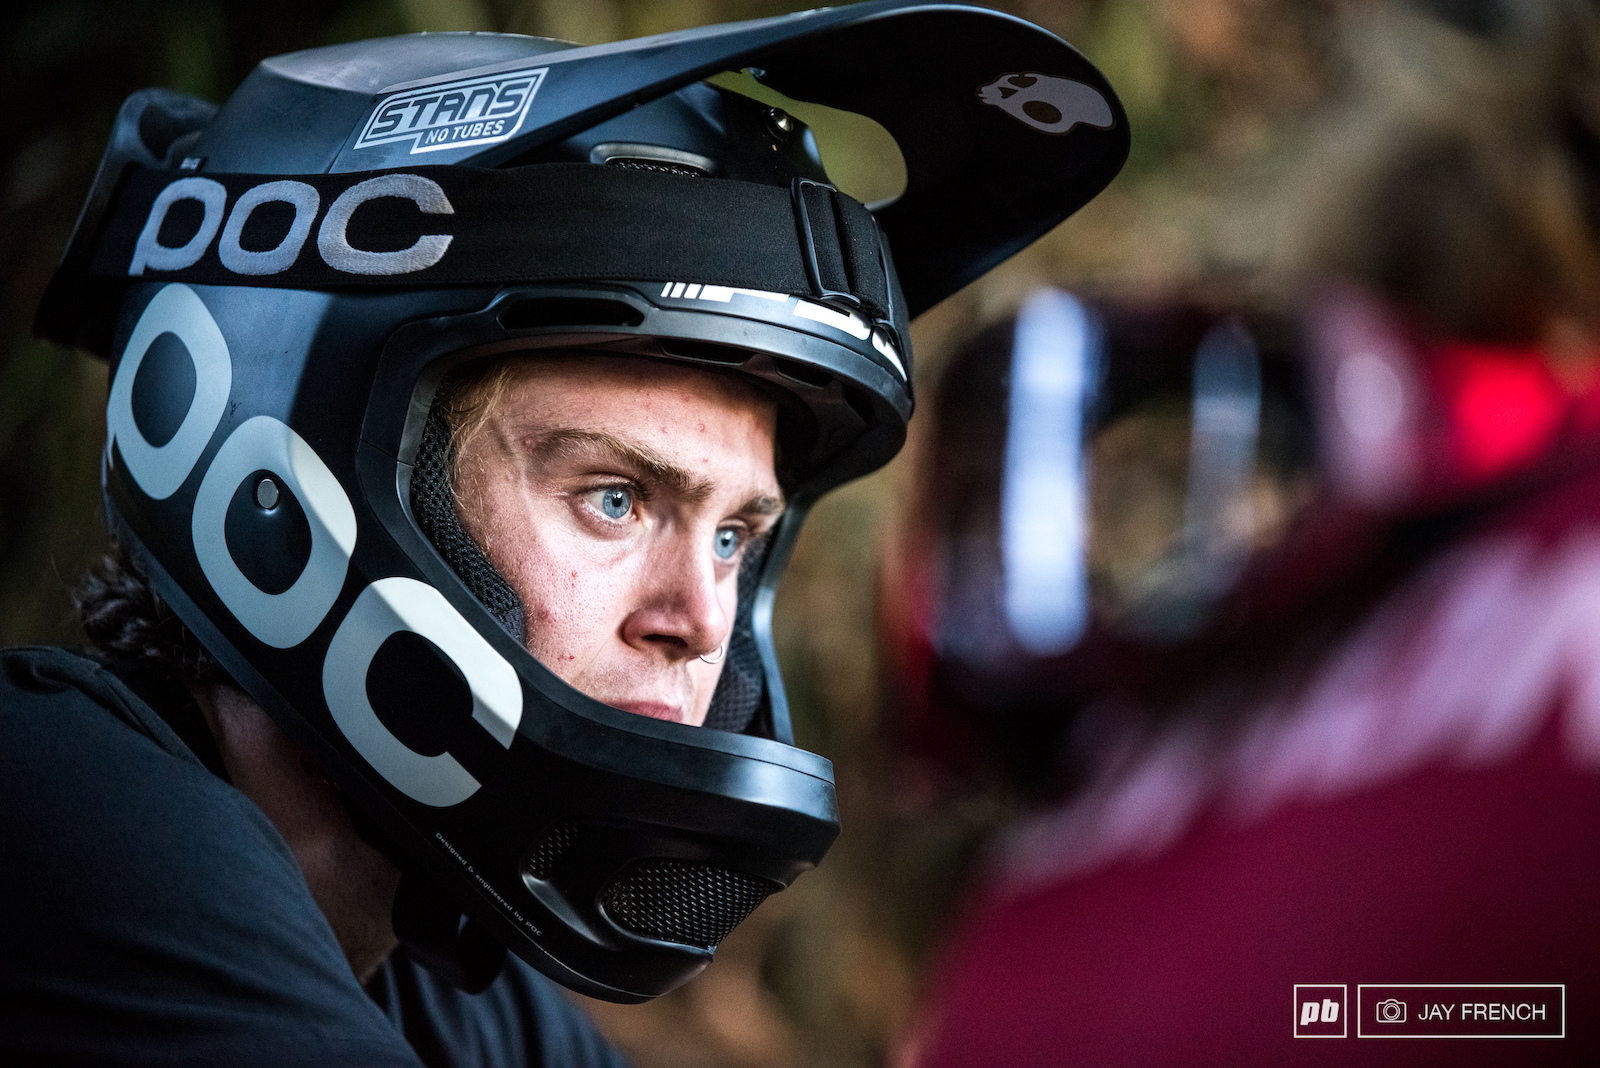 Serious contender for King of Crankworx Keegan is taking this very seriously.